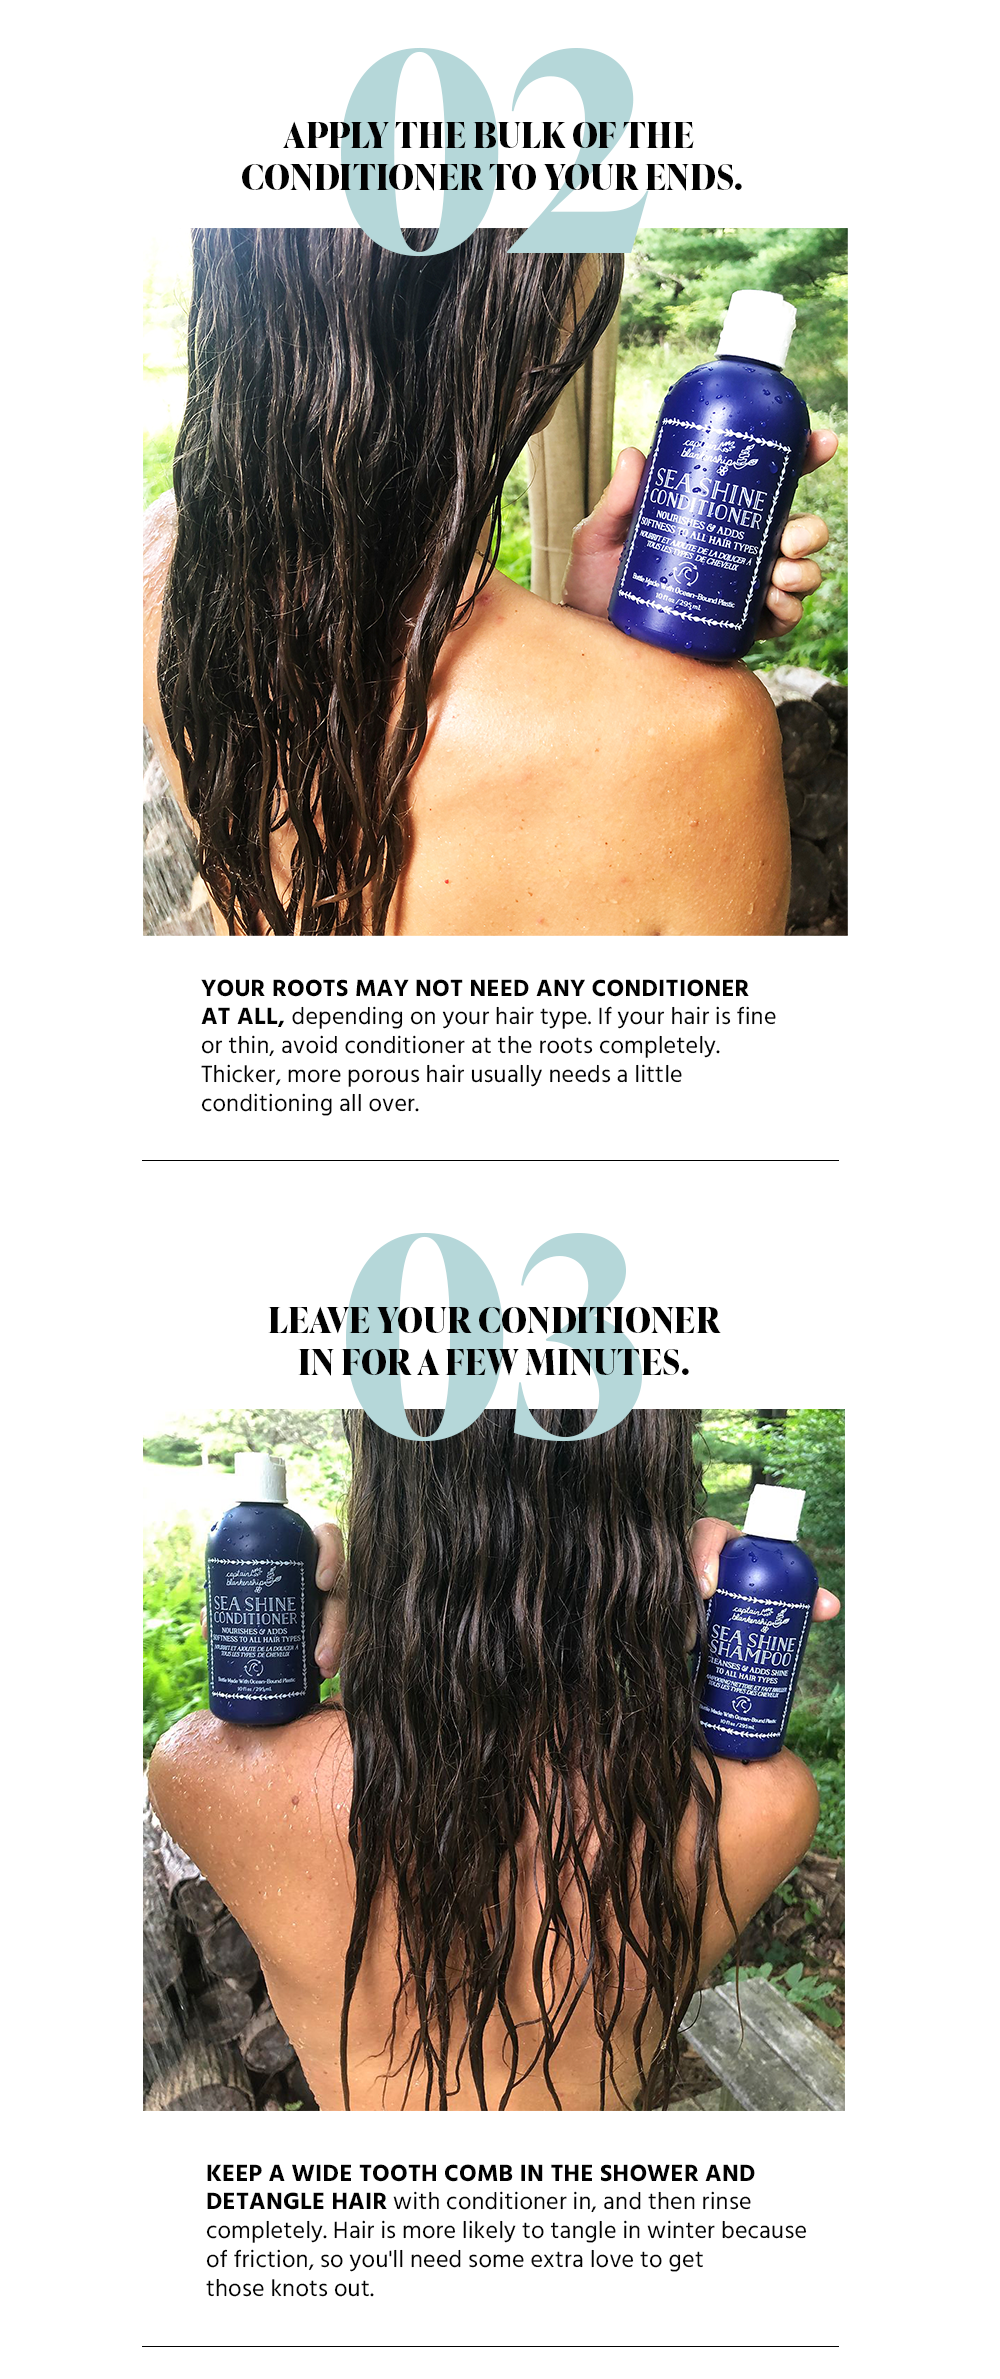 Your roots may not need any conditioner  at all, depending on your hair type. If your hair is fine  or thin, avoid conditioner at the roots completely.  Thicker, more porous hair usually needs a little  conditioning all over.